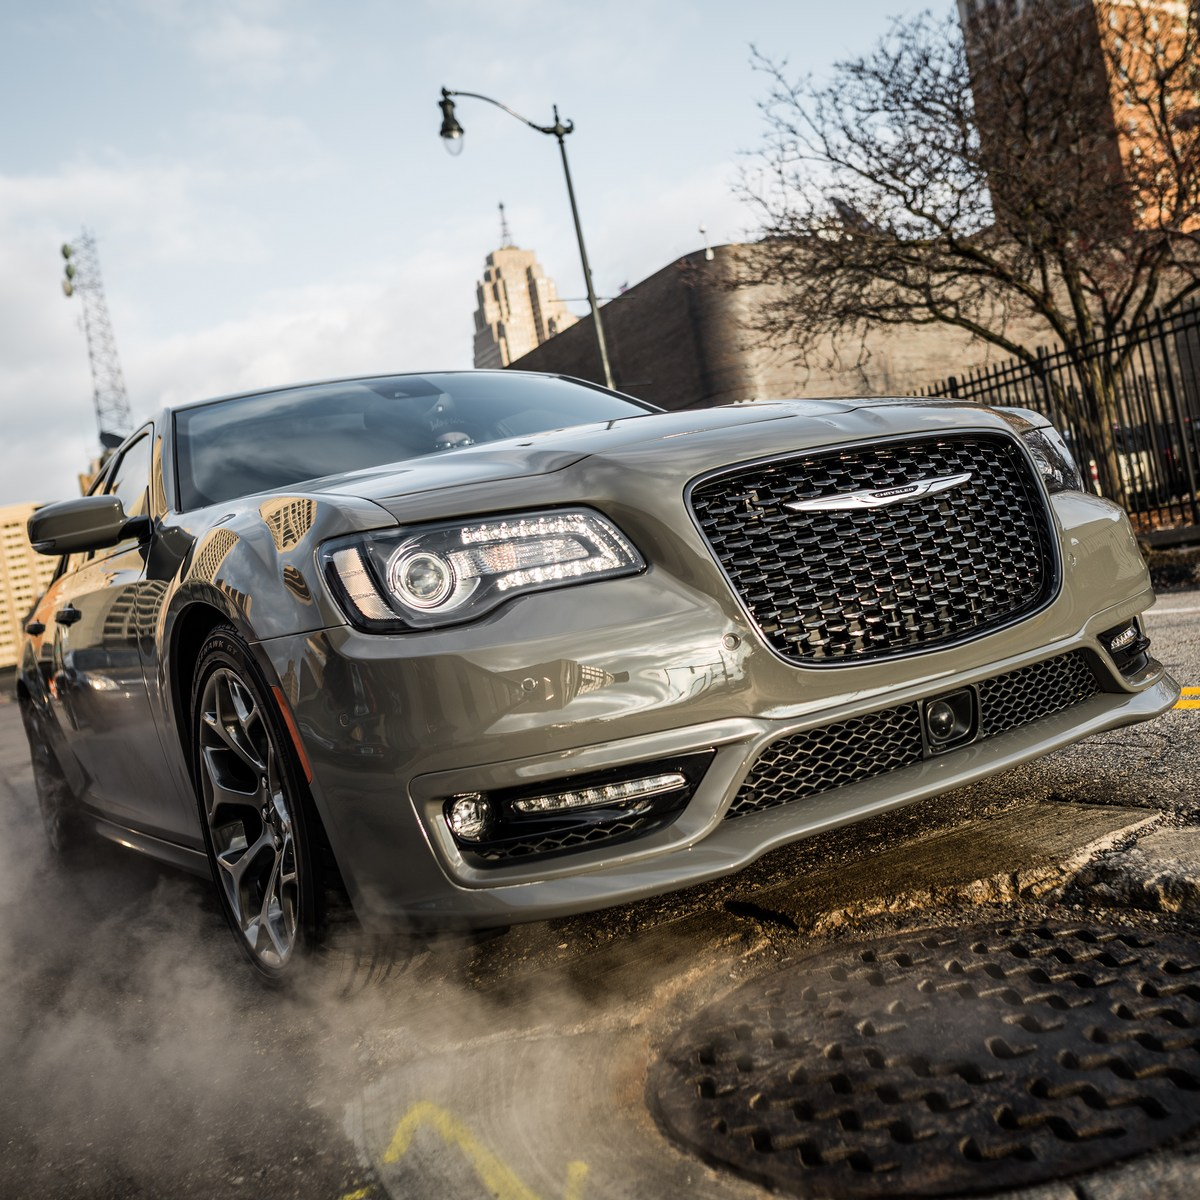 Chrysler Reportedly Axes Redesigned 300, Hellcat Model In